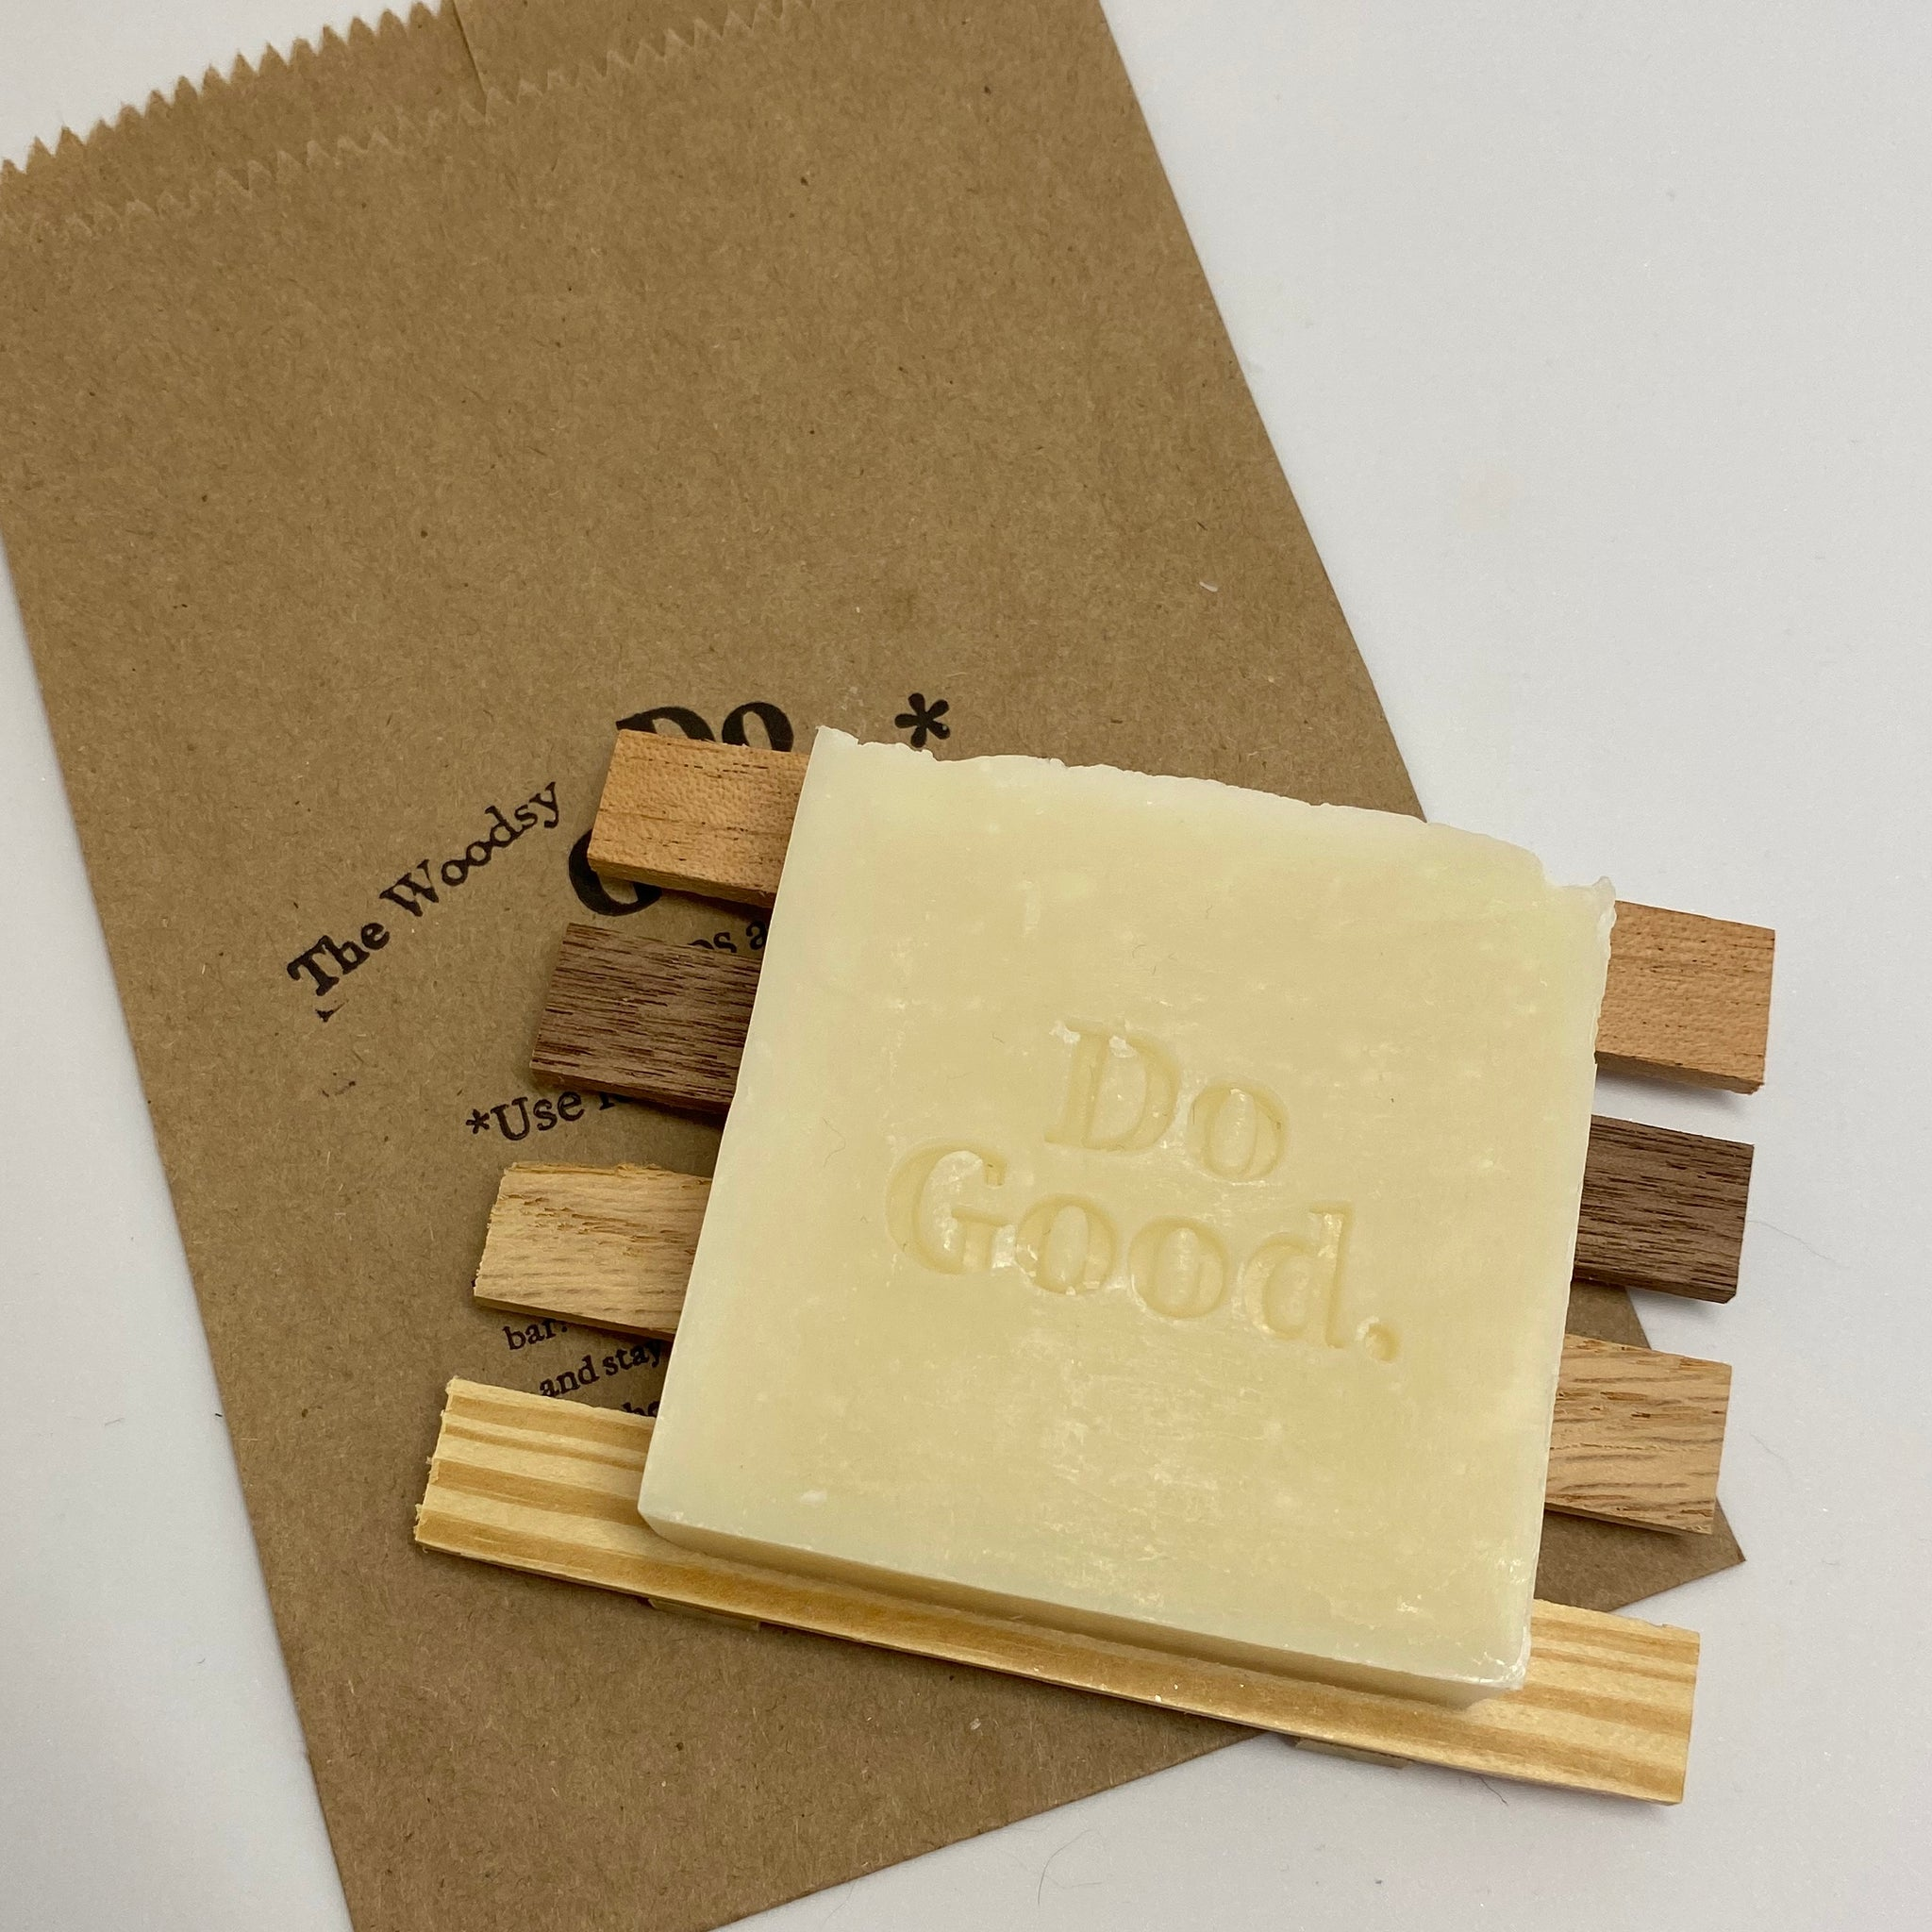 The Woodsy Soap Bar